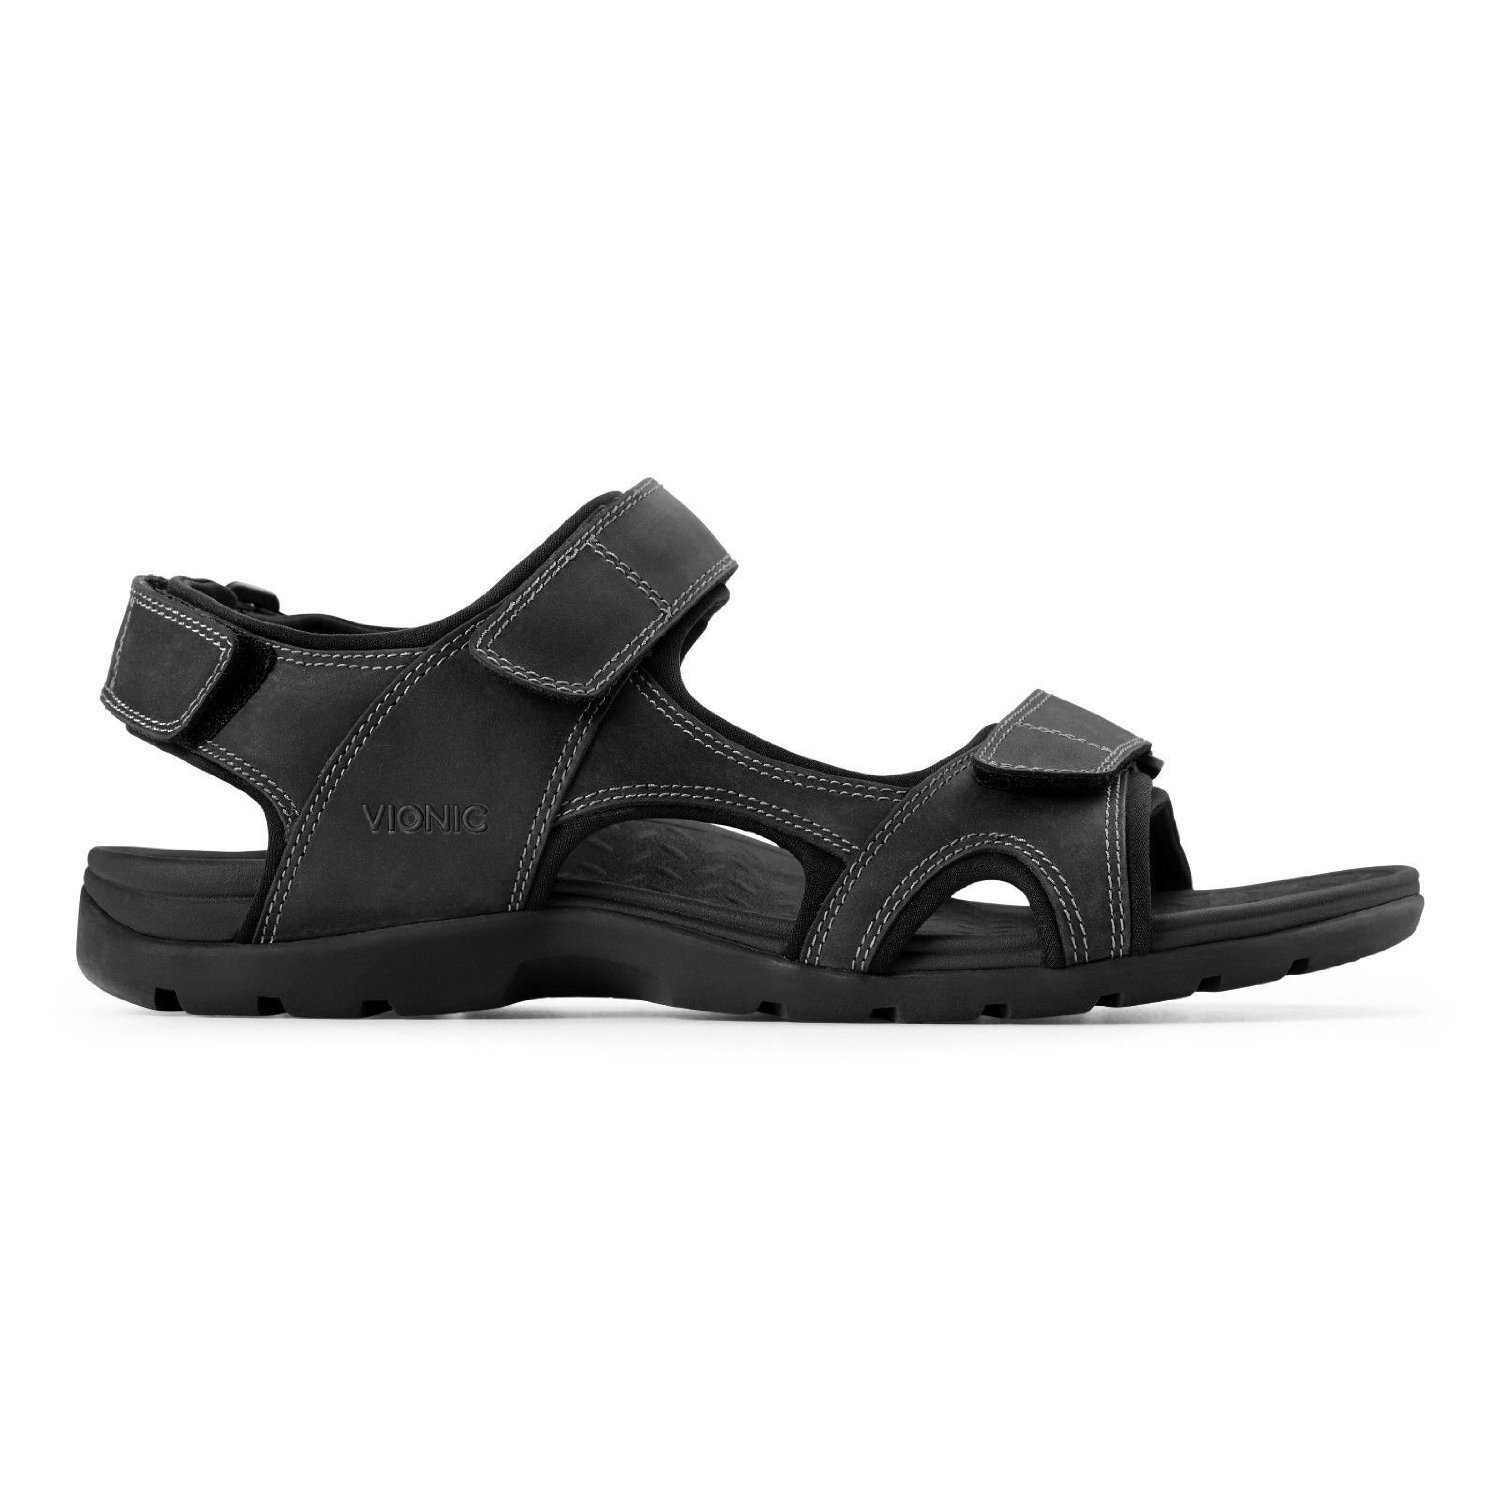 Vionic Men's Gerrit Adjustable Adventure Sandals | FMT Support Technology:  Amazon.co.uk: Shoes & Bags